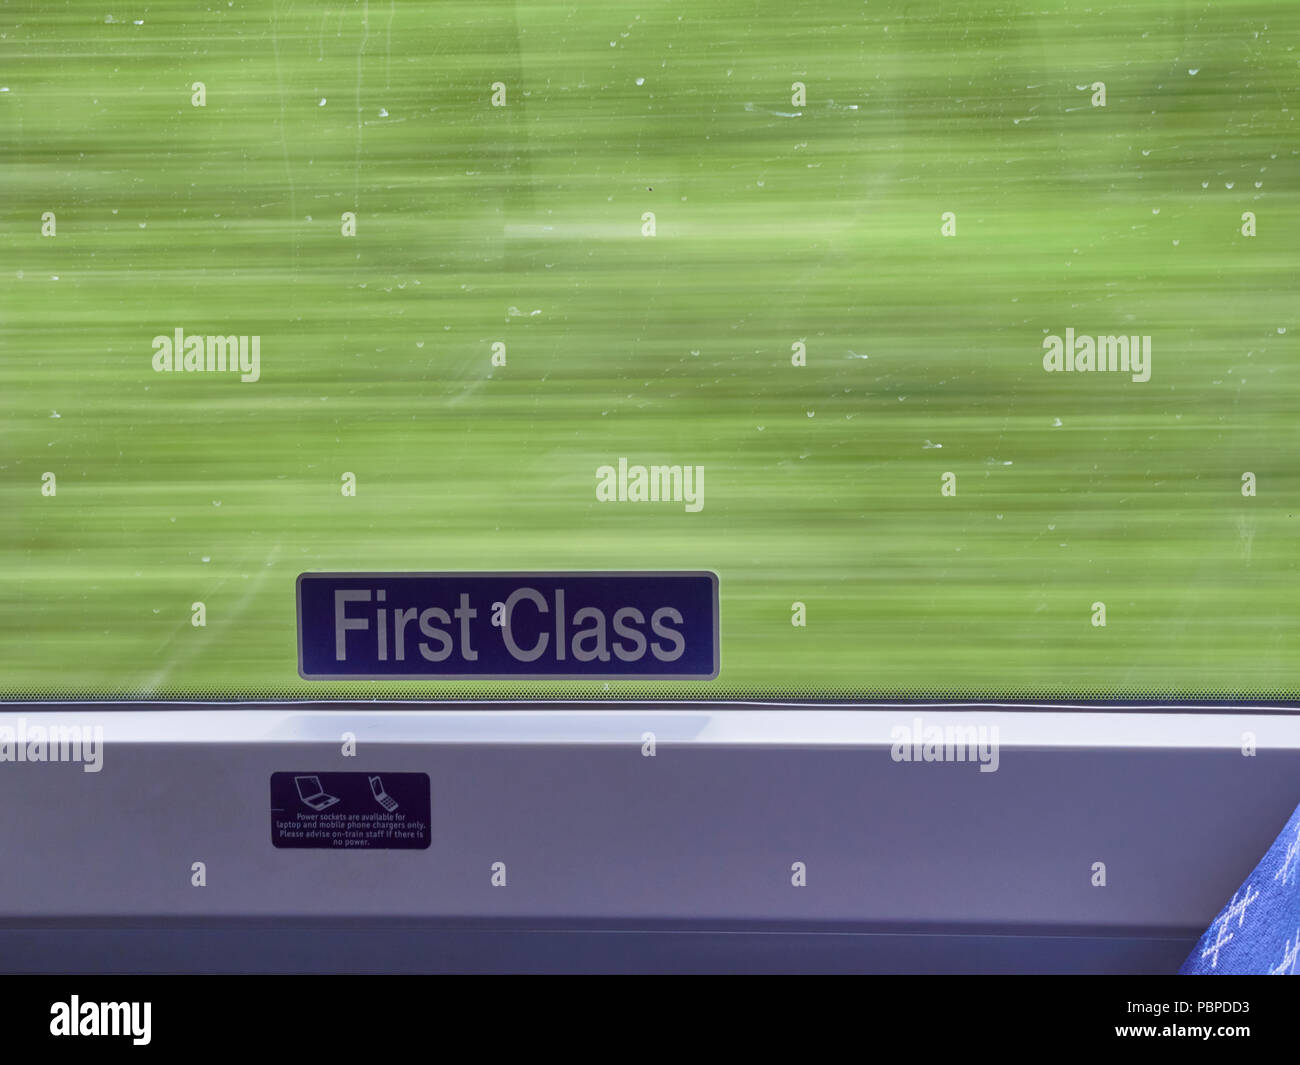 The First Class Carriage sign on a Moving Train with a blurred green background showing the speed of travel. North East Scotland, UK. - Stock Image